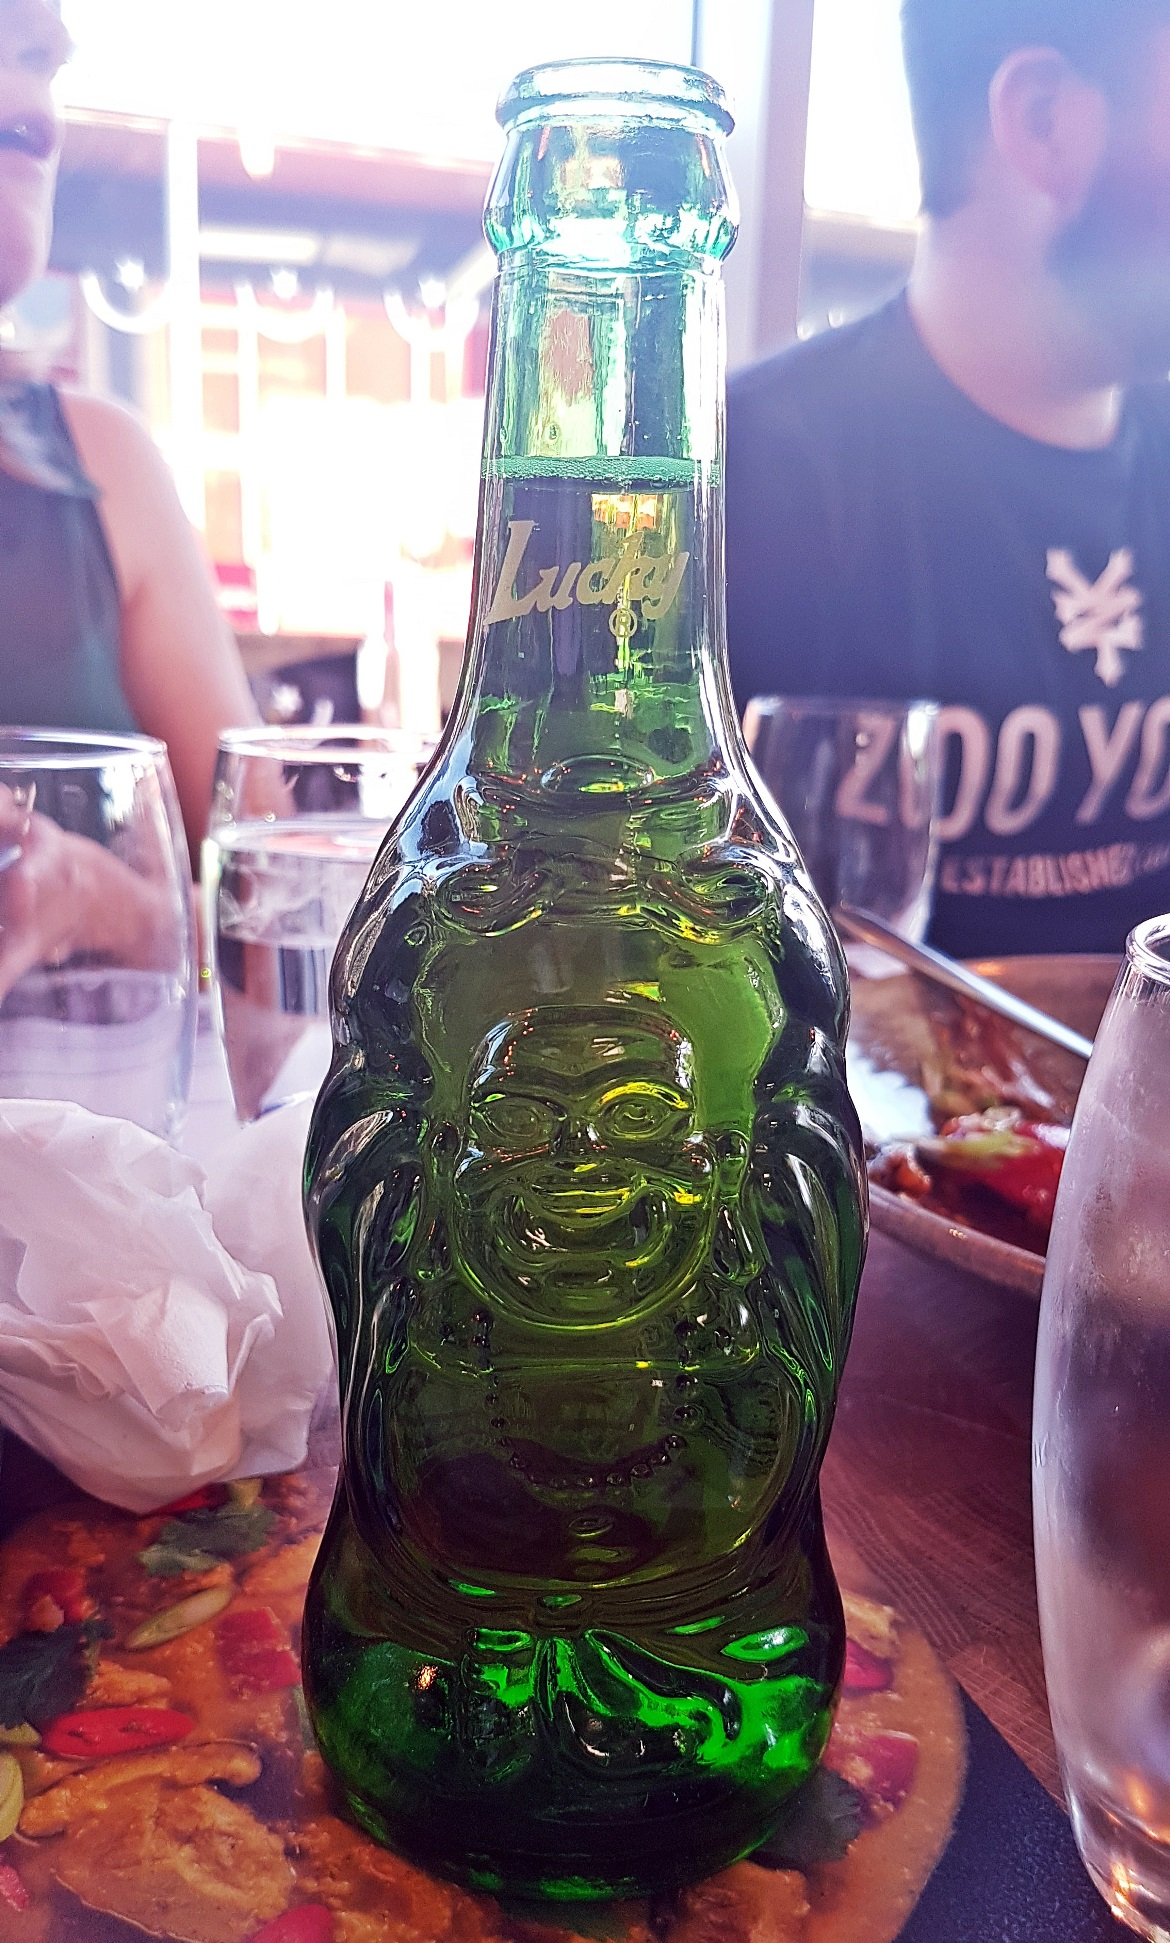 Lucky Buddha beer - Wagamama Menu Pairing, Review by BeckyBecky Blogs